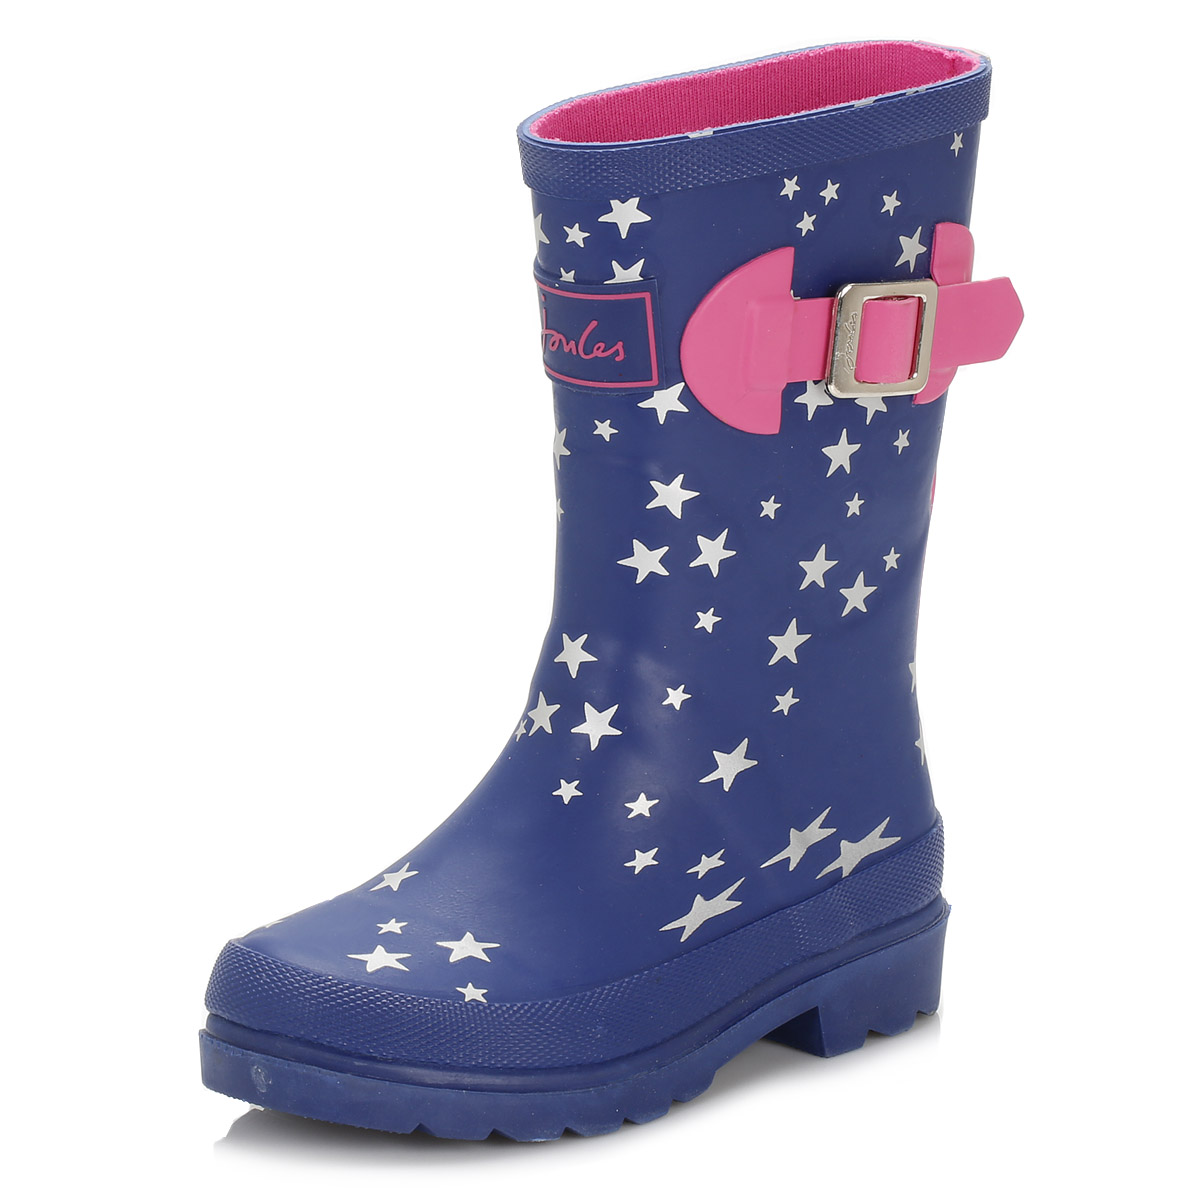 Joules Toddler Navy Blue Wellington Boots Kids Pull On ...